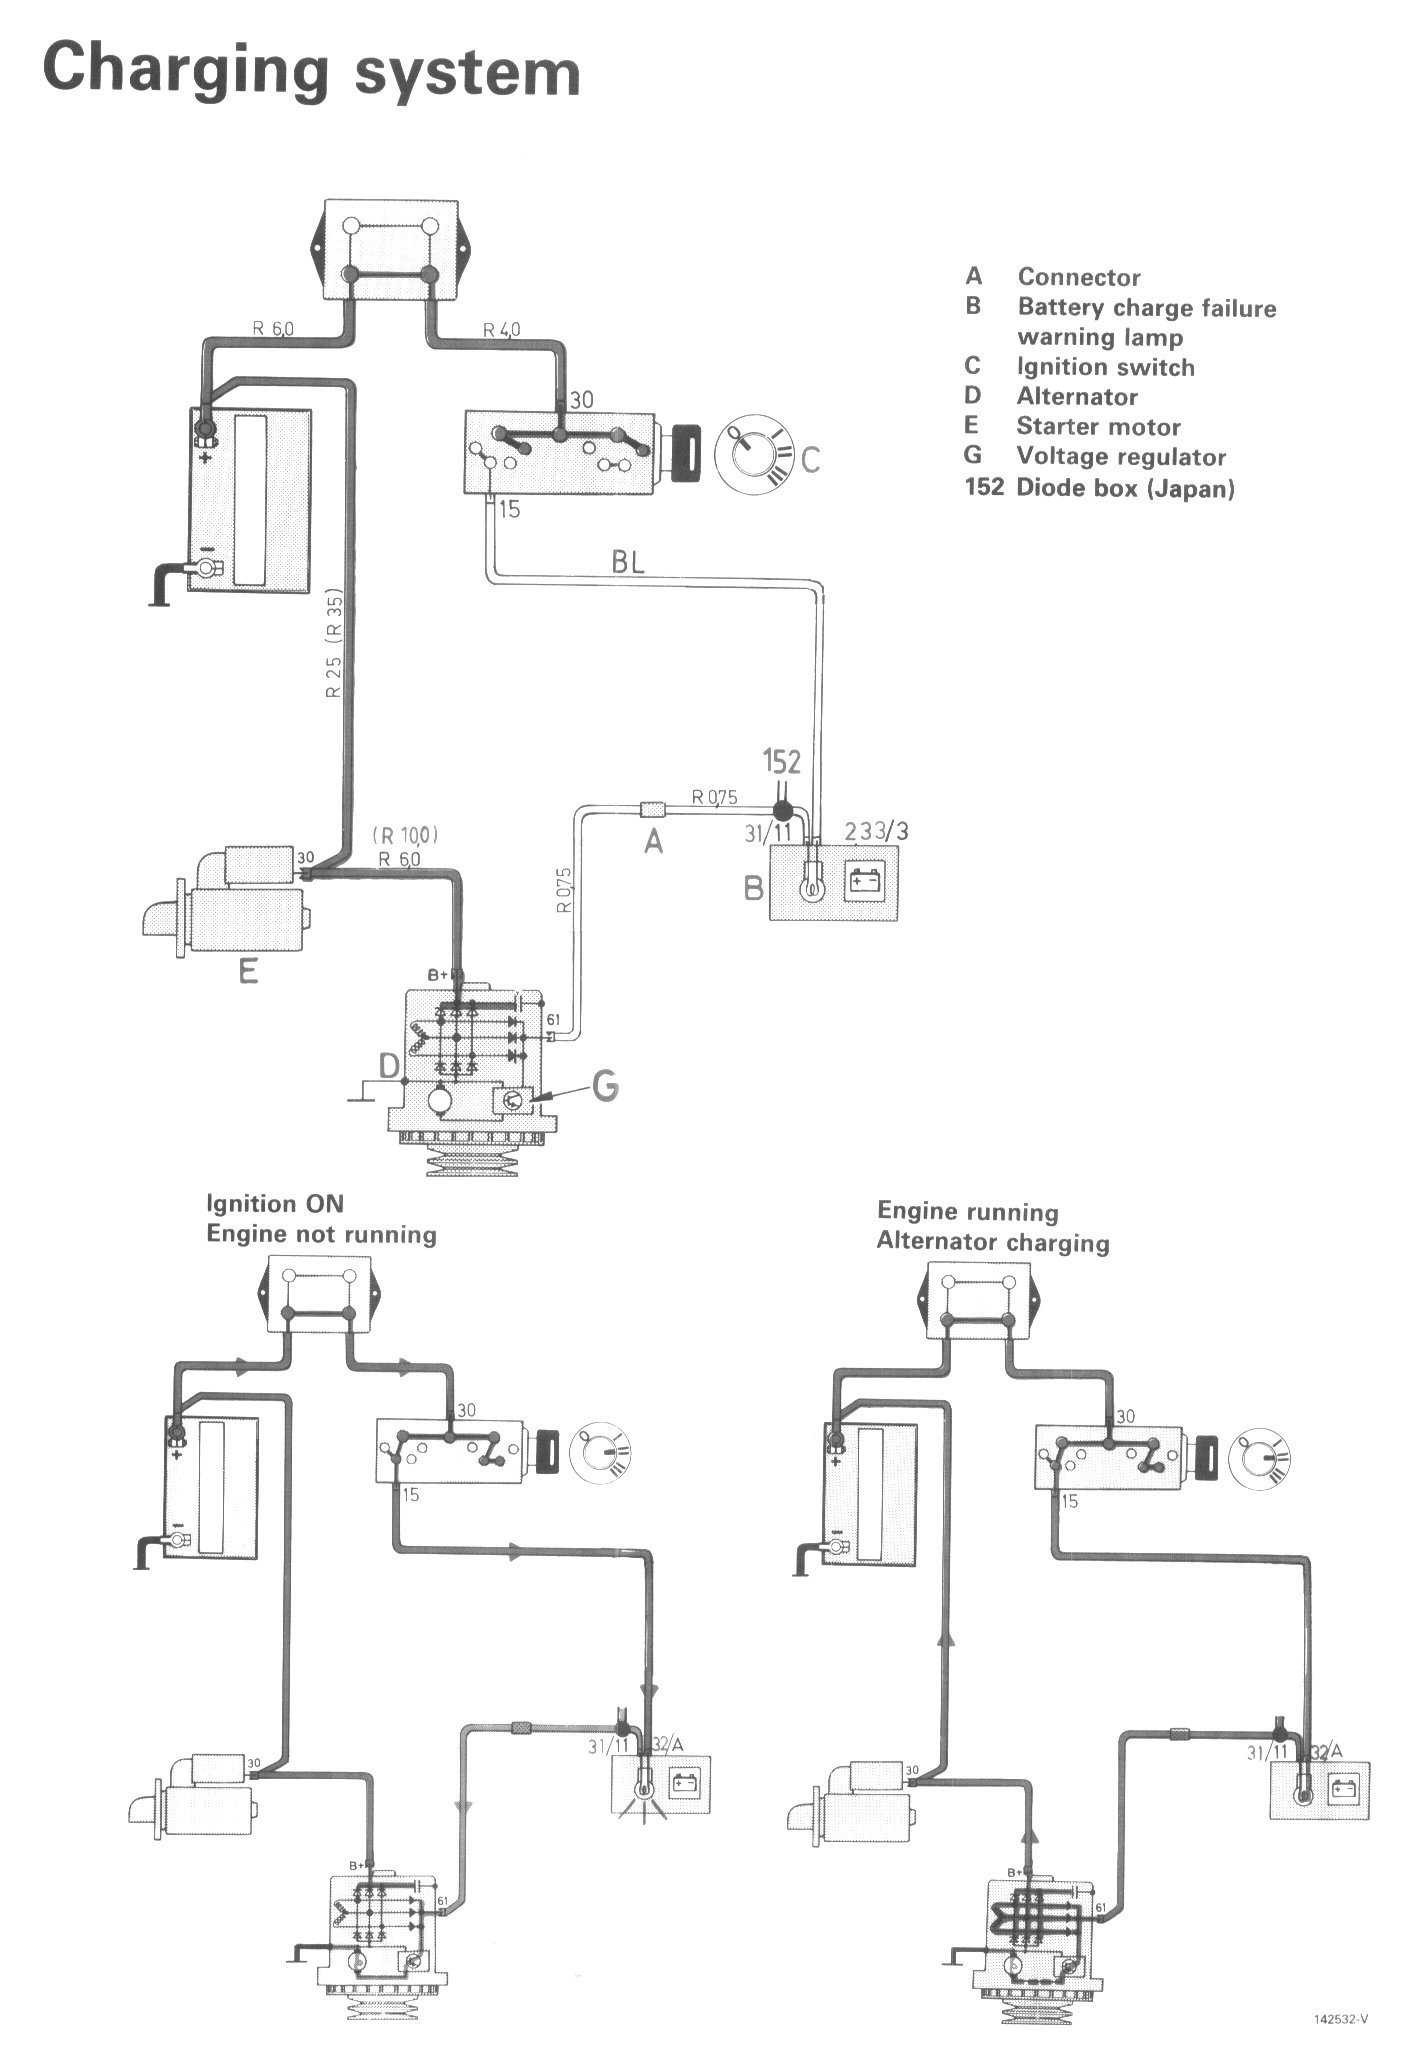 Wiring Diagram 1990 Volvo Wagon - Wildfire Scooter Wiring Diagram -  audi-a3.tukune.jeanjaures37.fr